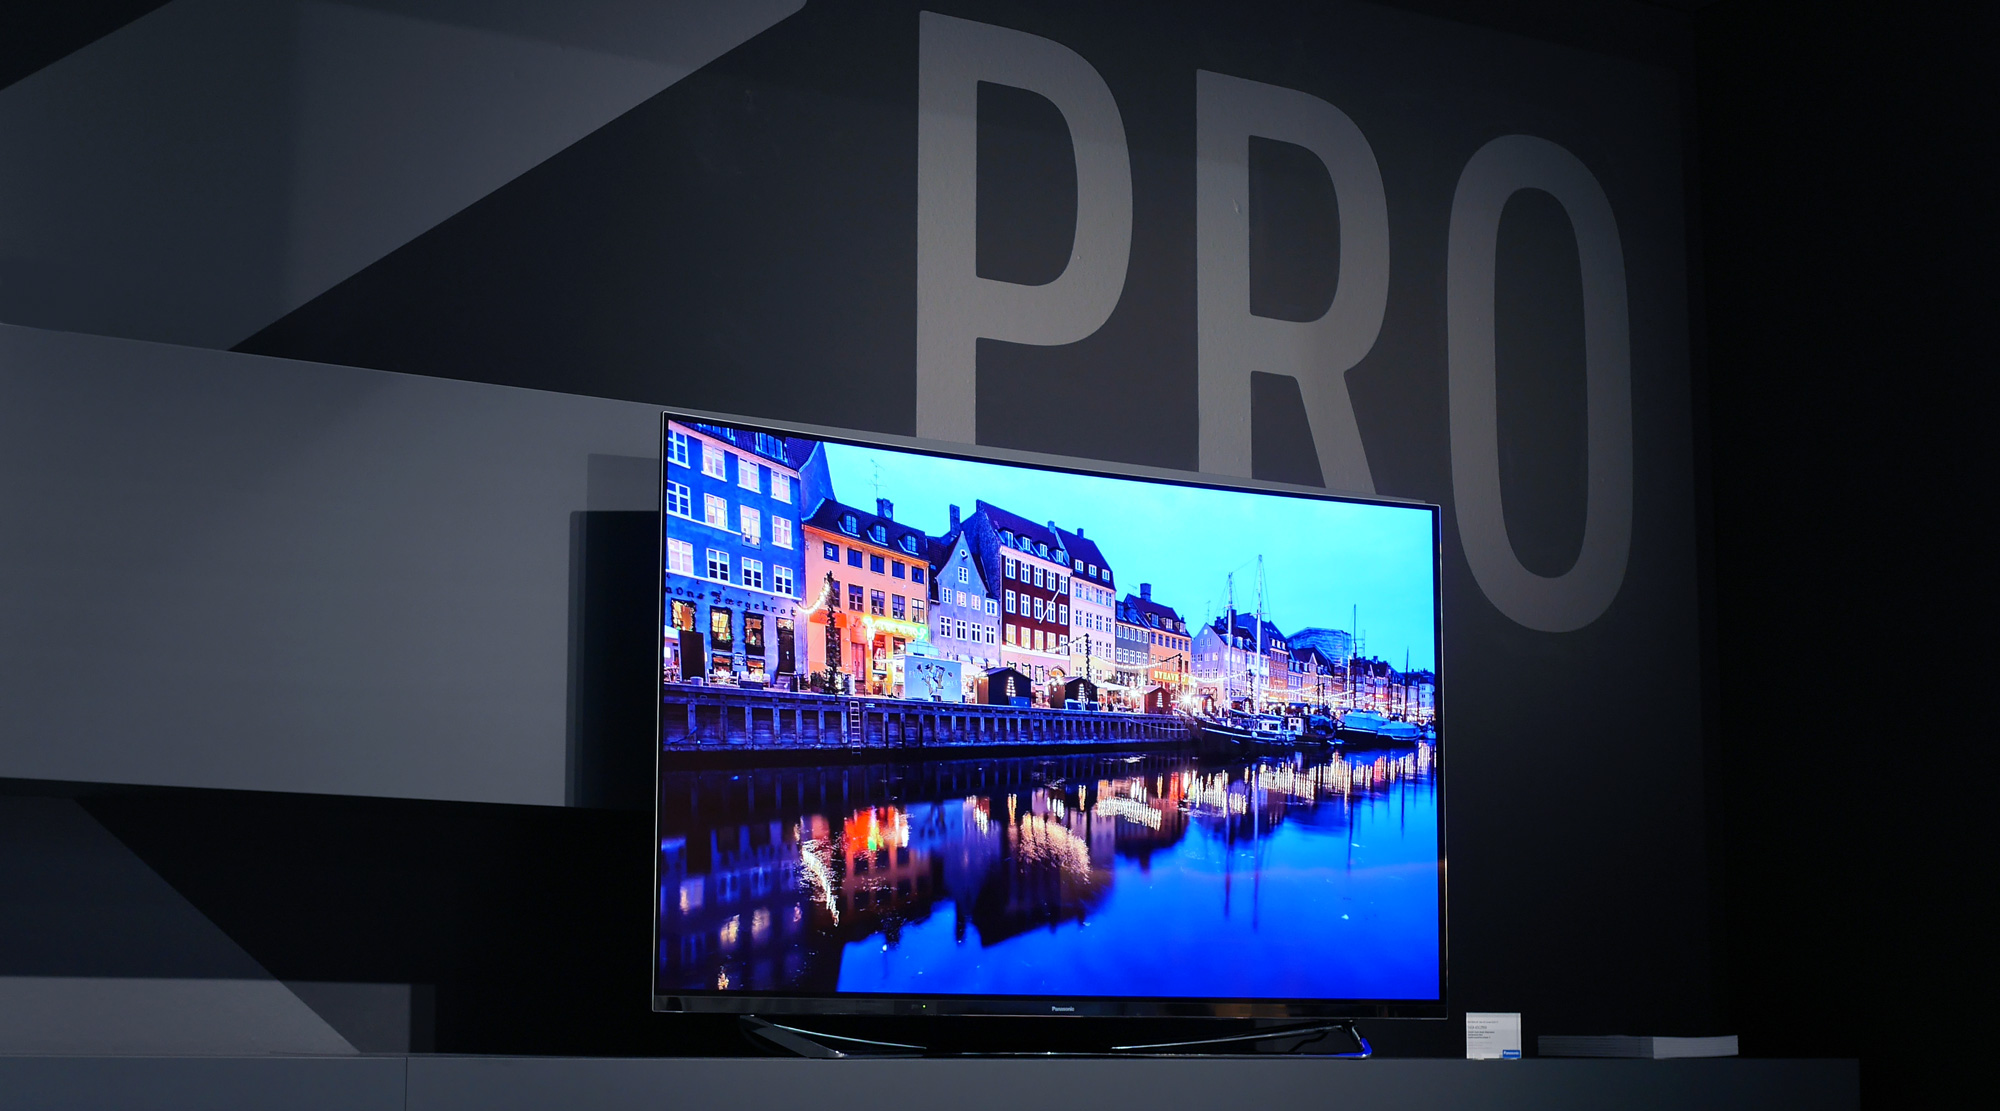 panasonic cz950 4k oled tv first impressions review televisions. Black Bedroom Furniture Sets. Home Design Ideas